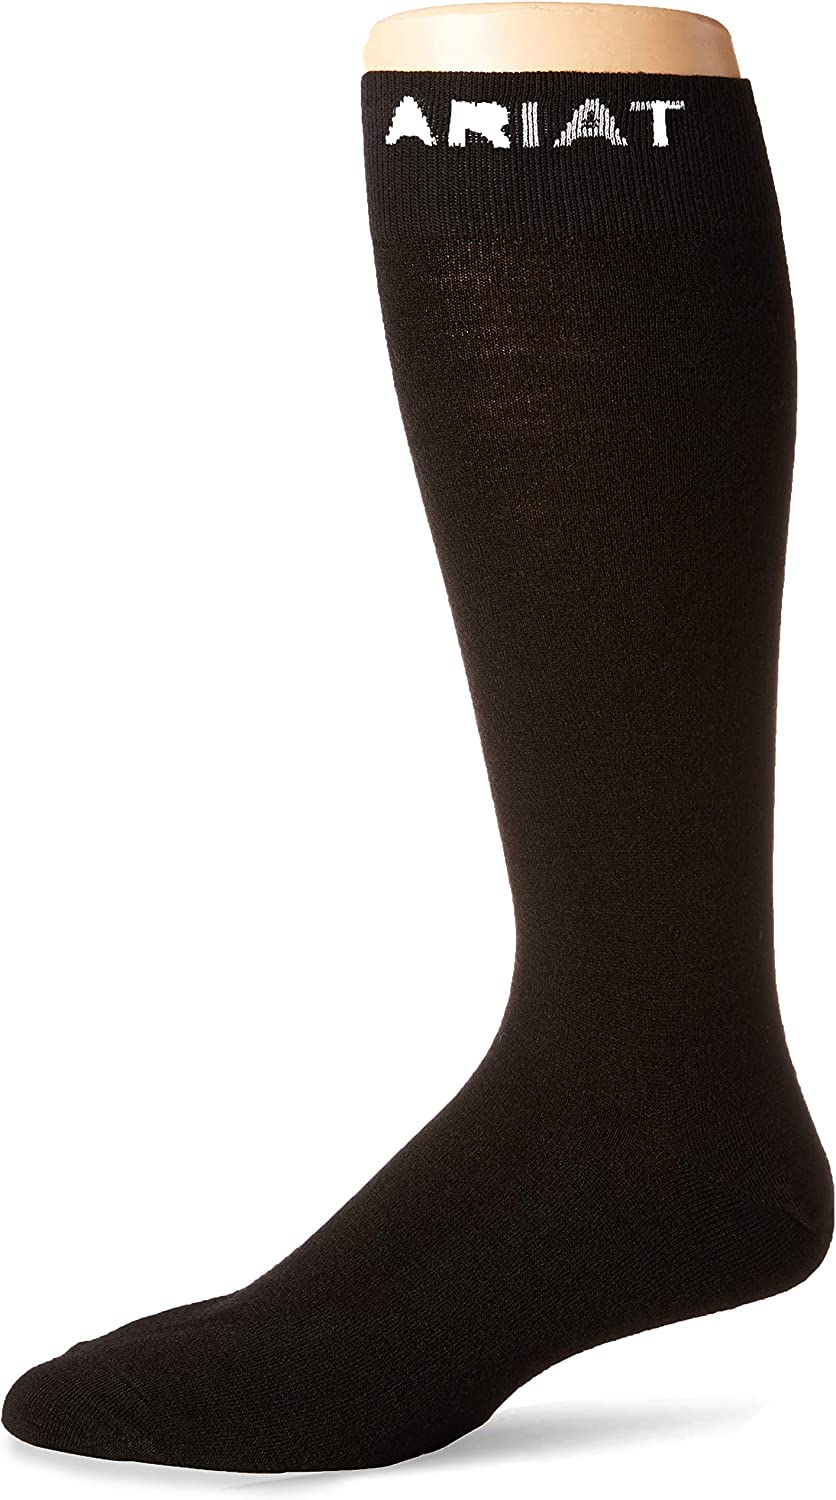 Ariat Men's Thin Boot Single Sock, black